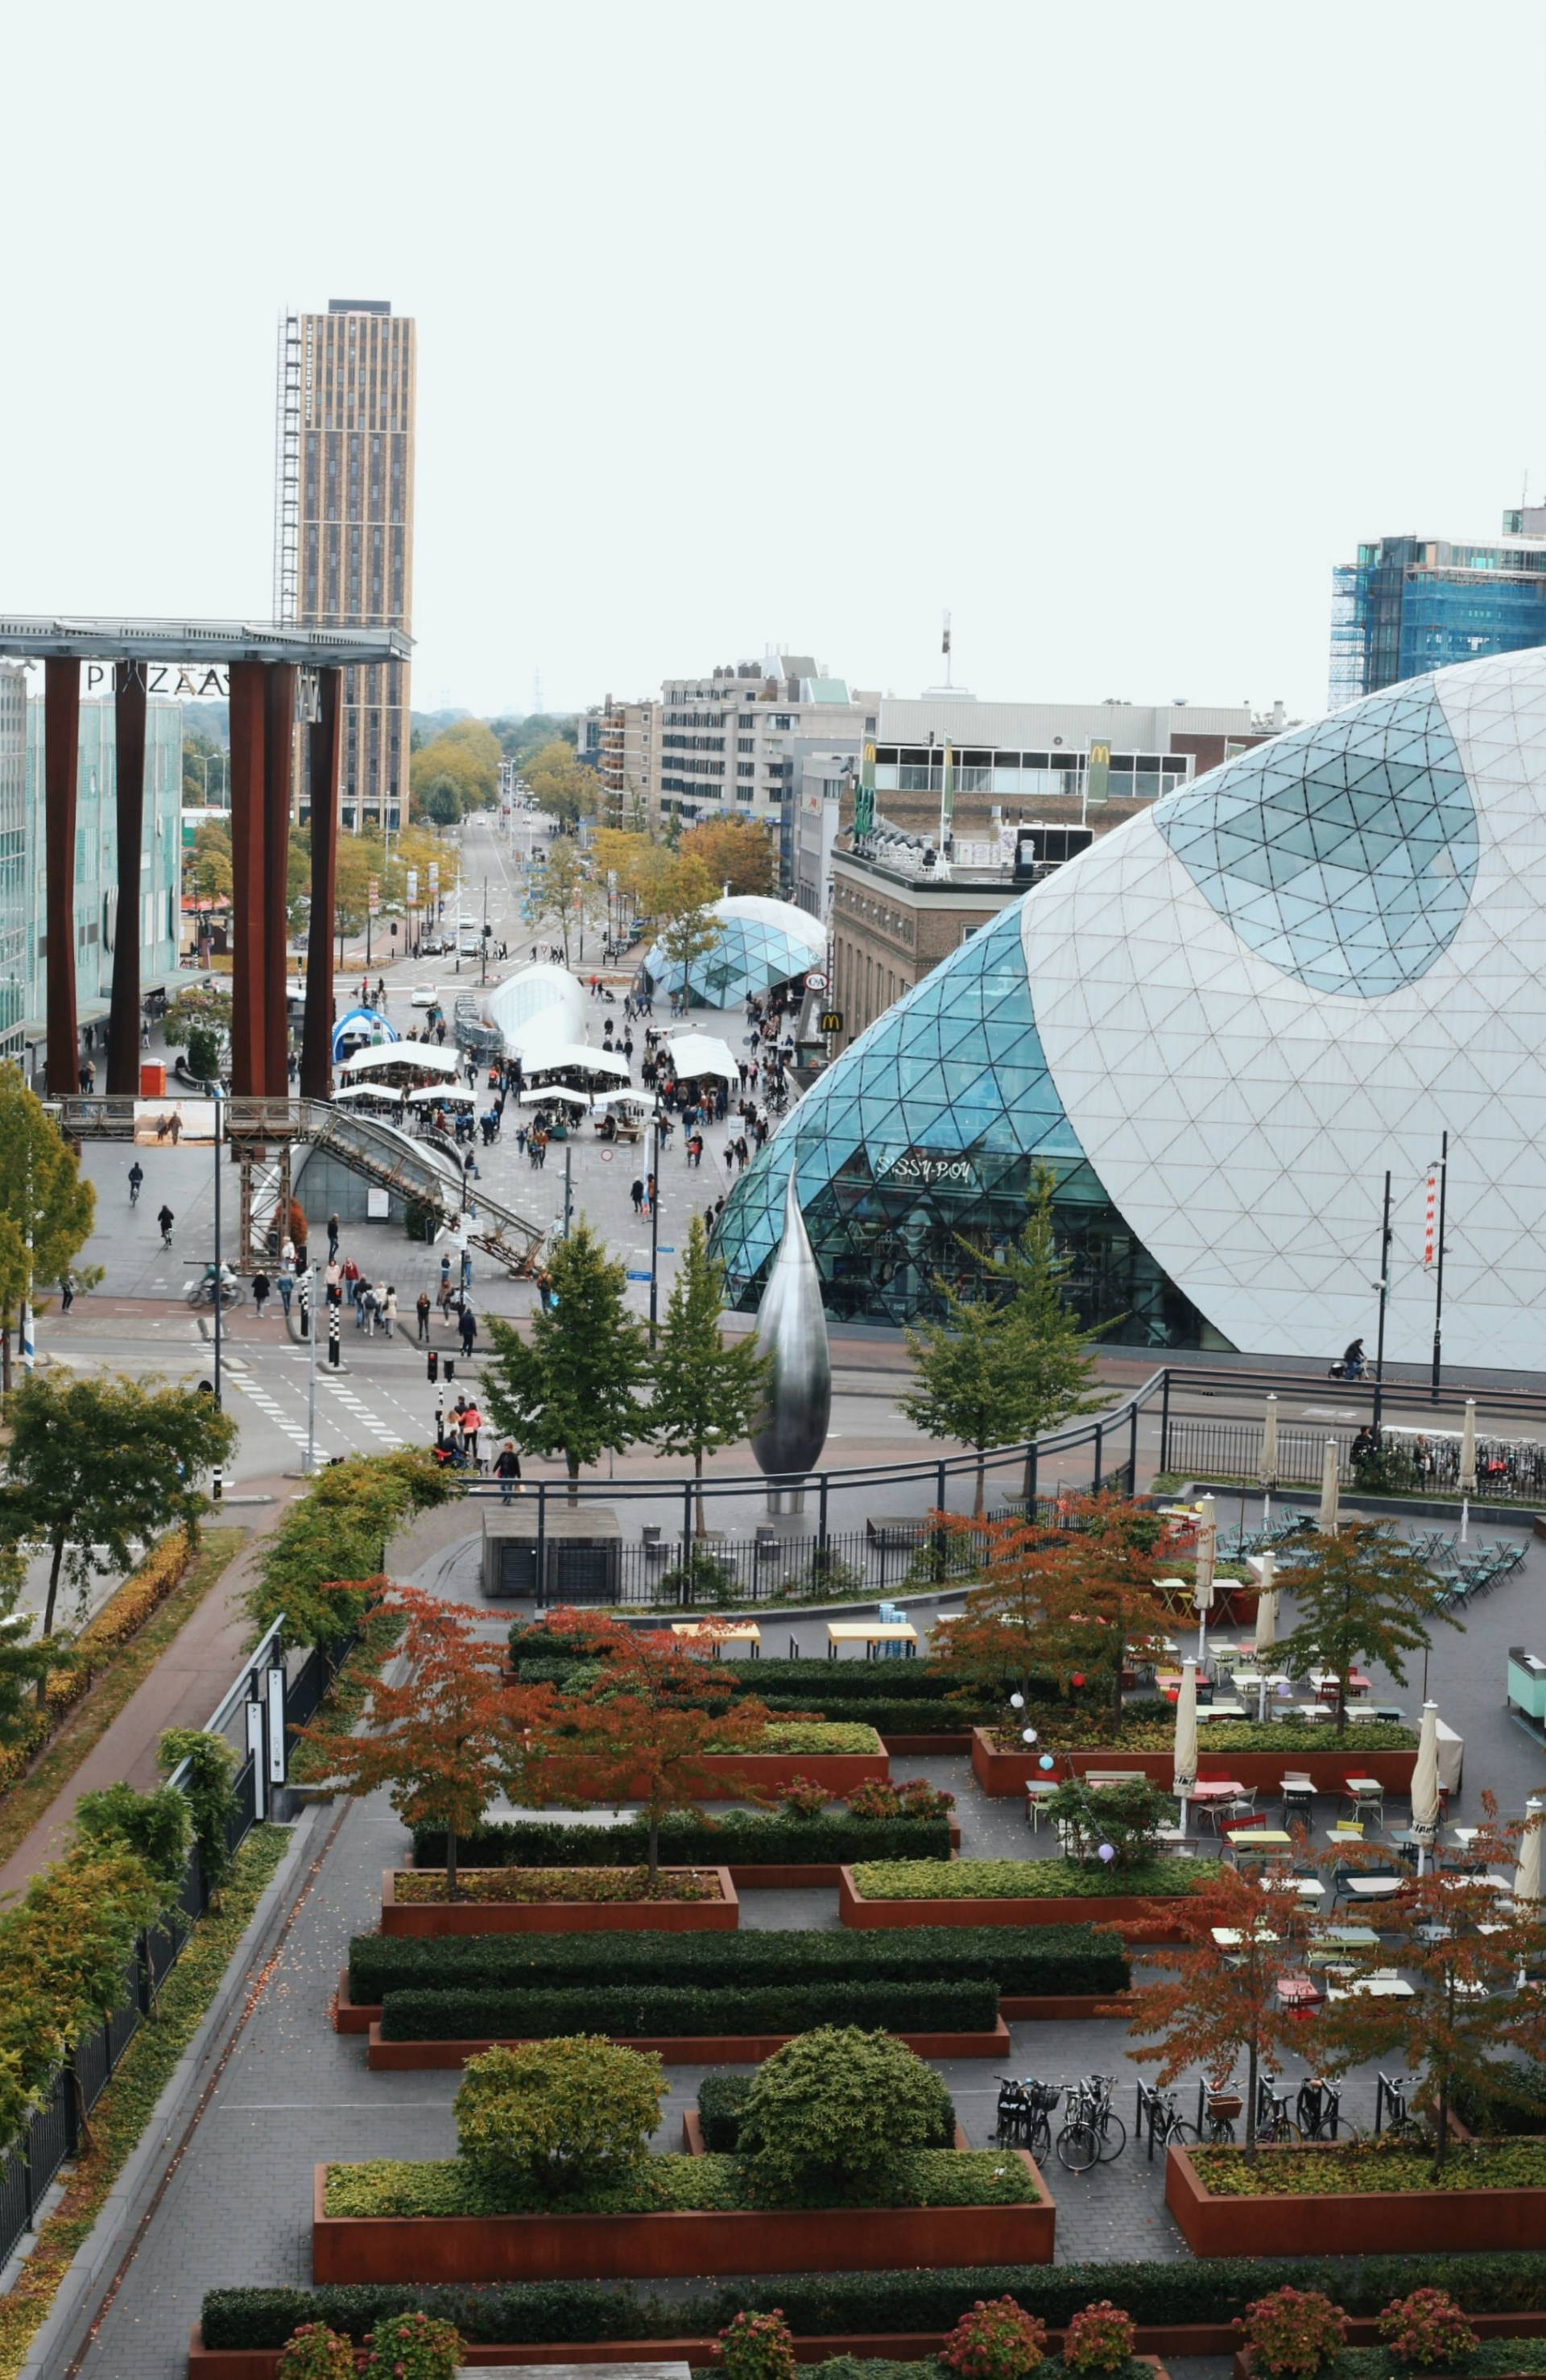 A complete city guide to Eindhoven, Netherlands